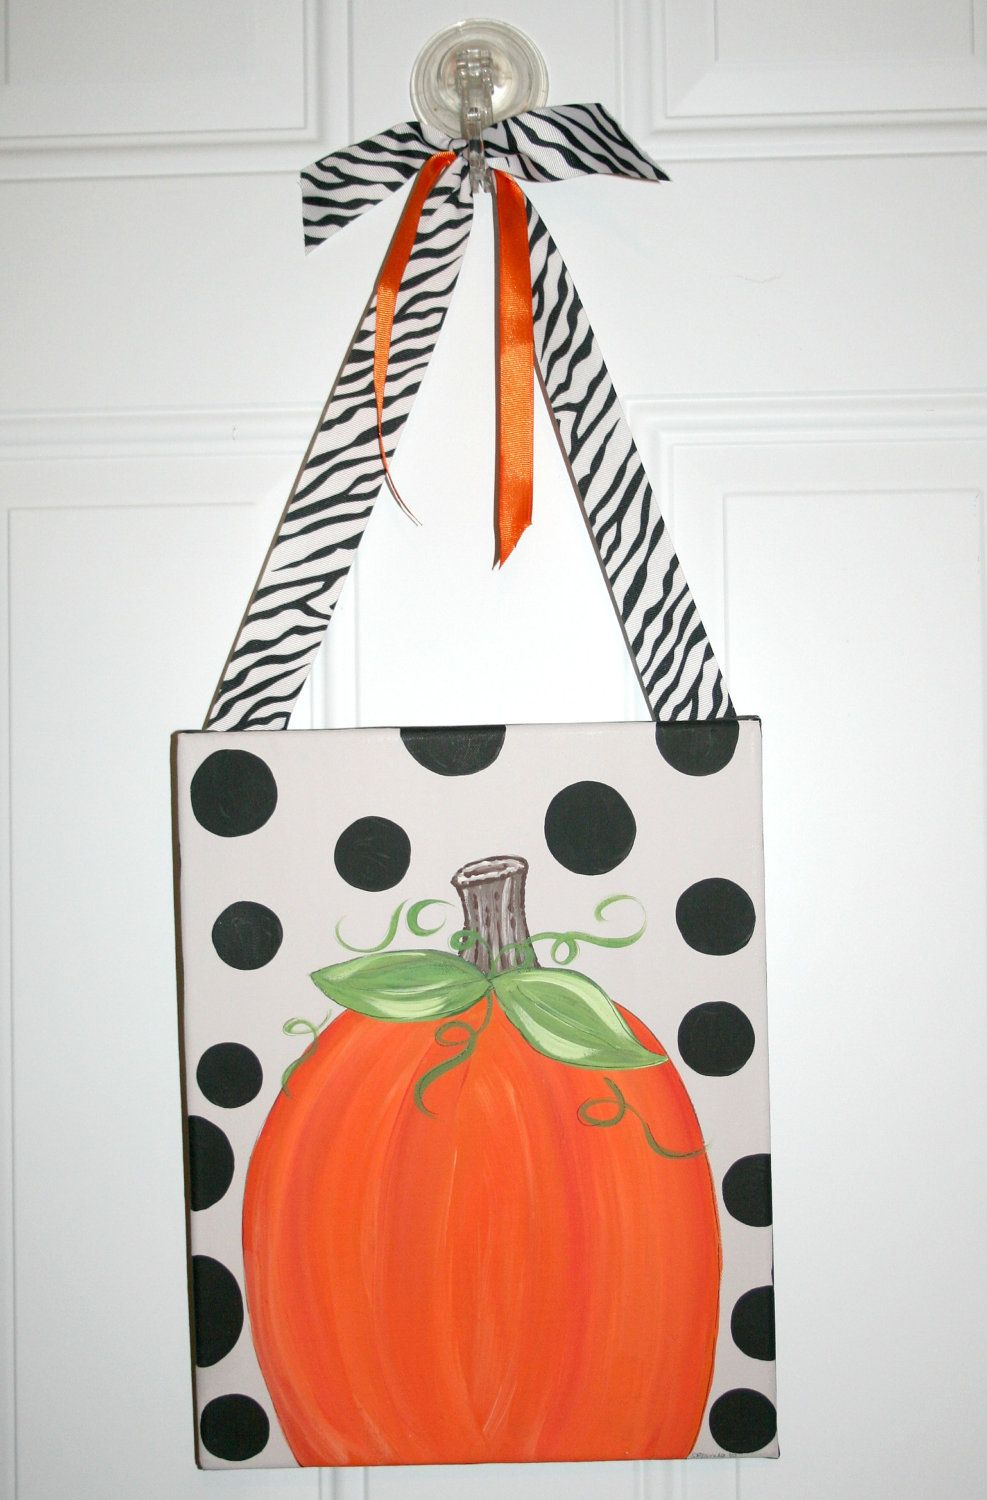 Personalized Autumn Pumpkin Fall Canvas Painting Art Decor Hand Painted Door Hanger. $29.99, via Etsy.